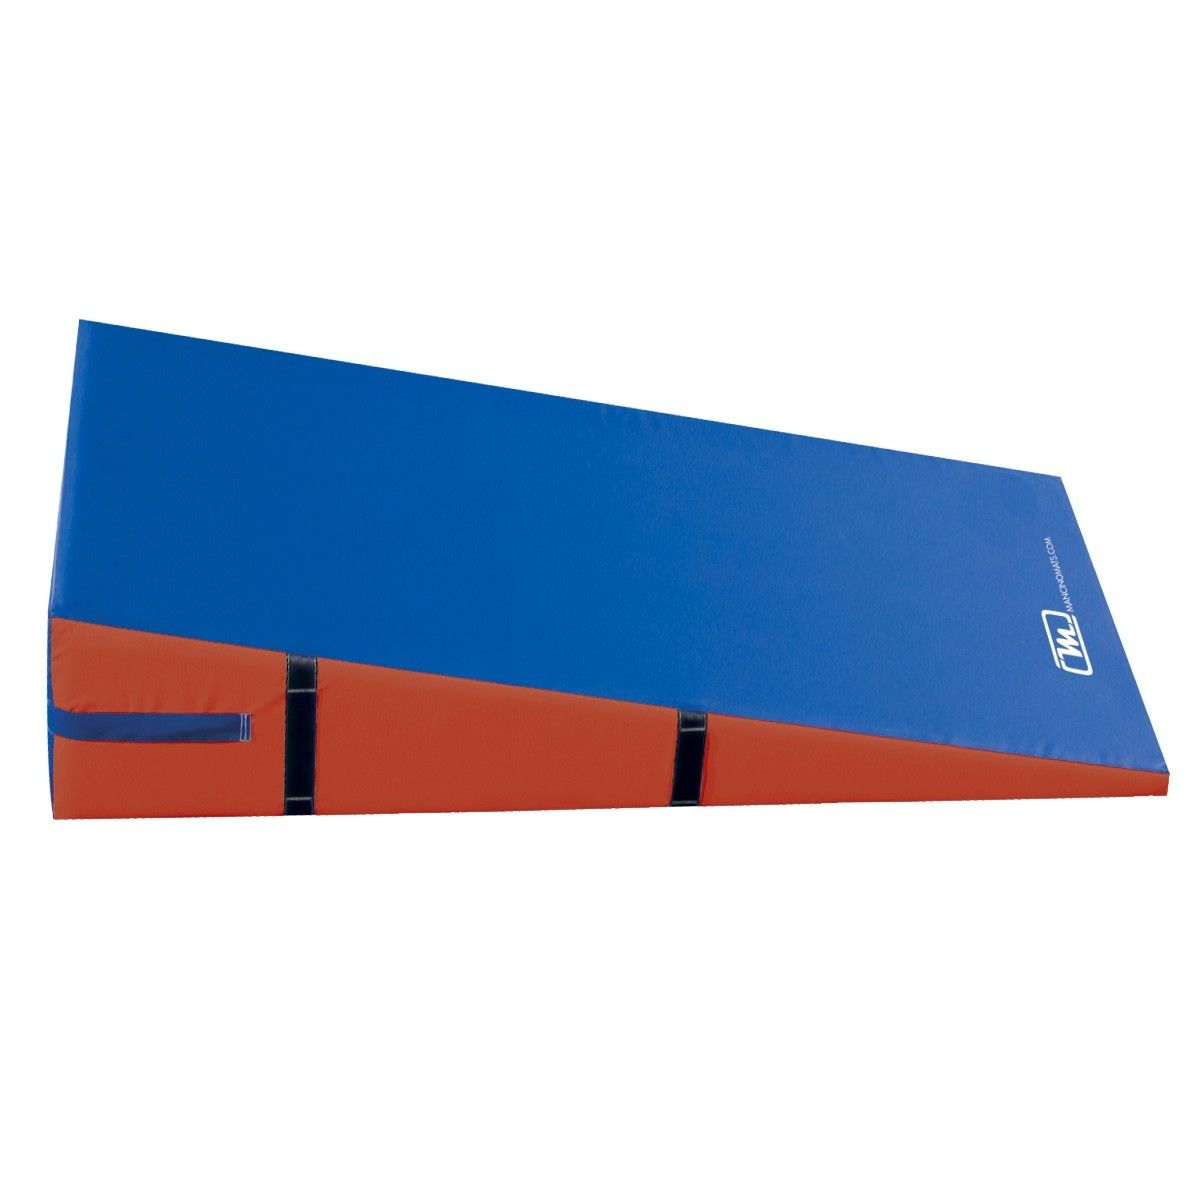 gymnastics inclinemat options resilite cheerleading explore products aids training sports purple mat mats inc incline cheer